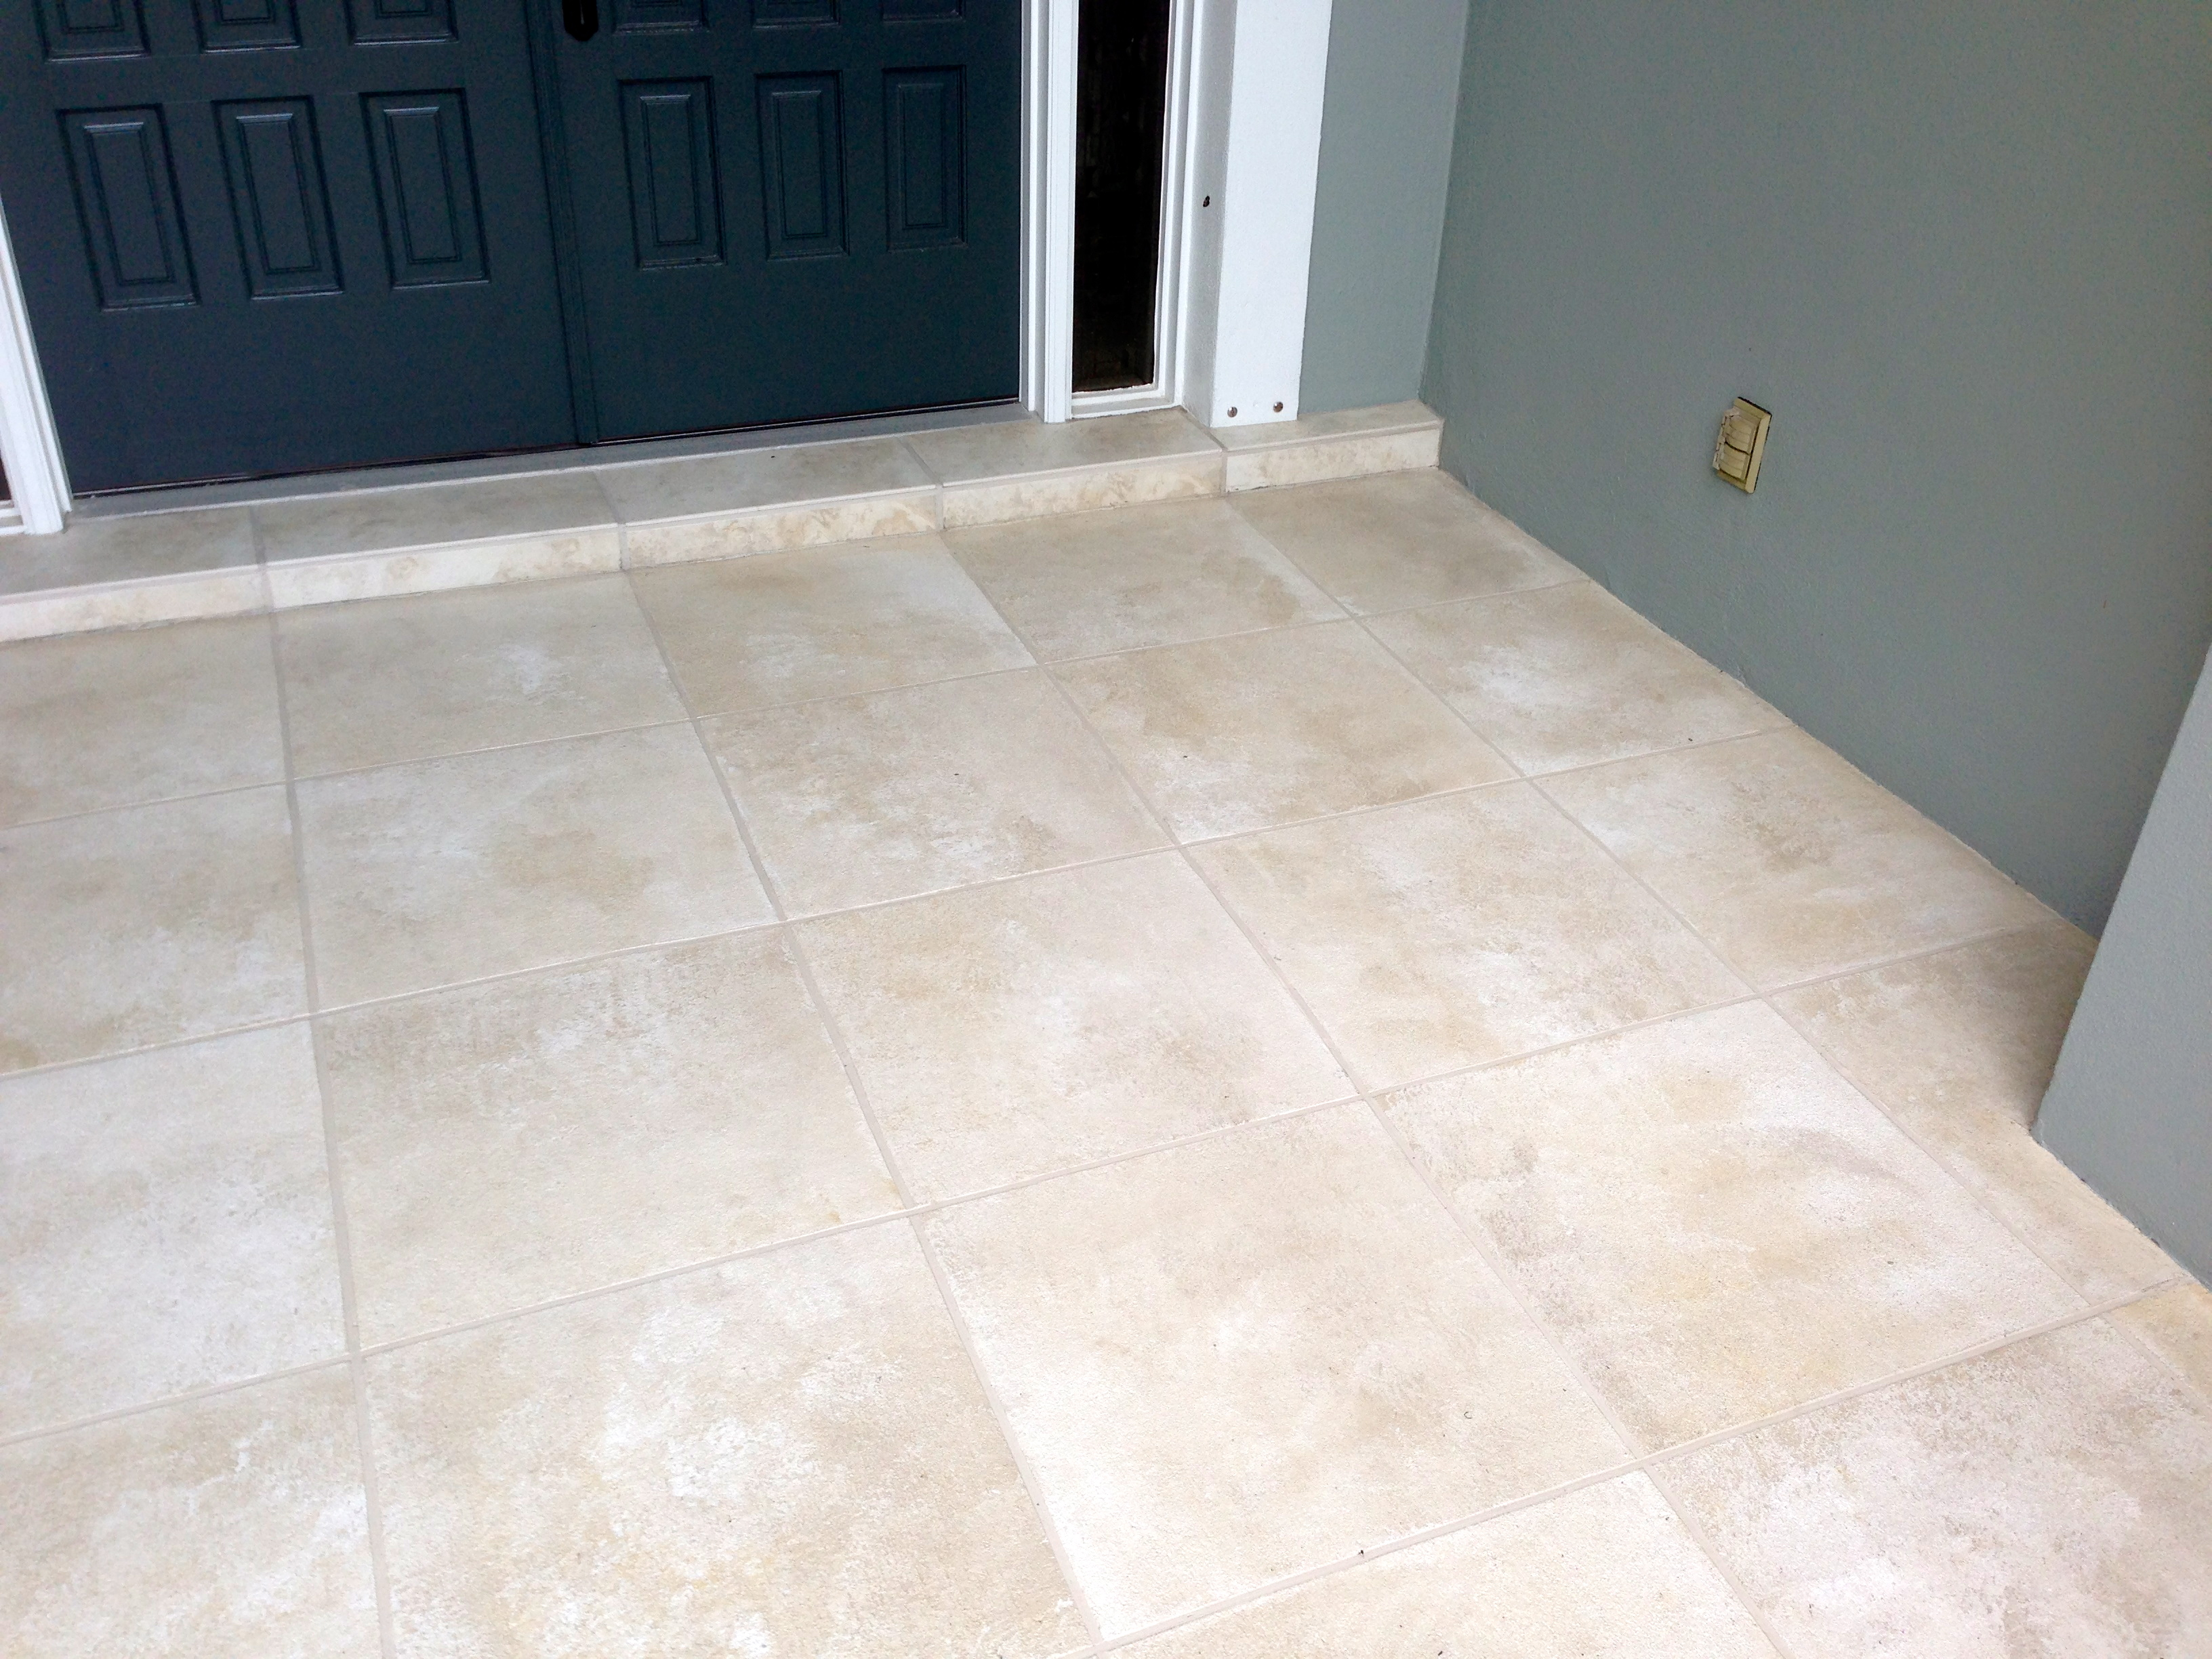 Concrete Designs Florida Tile Entryway In Indiatlantic